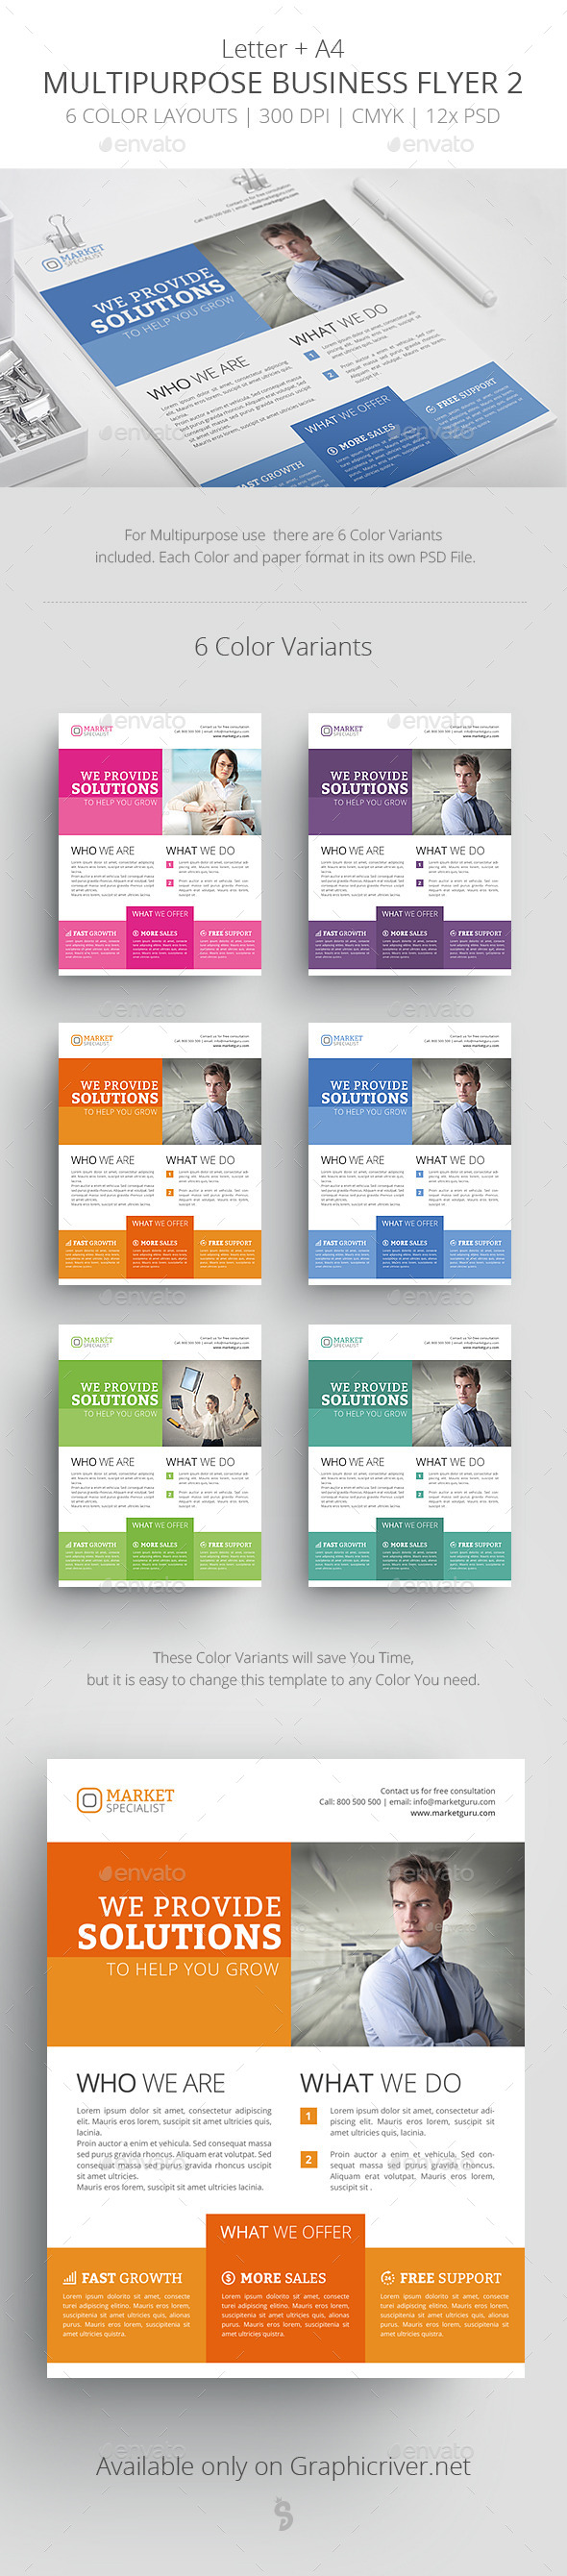 Multipurpose Business Flyer Template 2 - Corporate Flyers